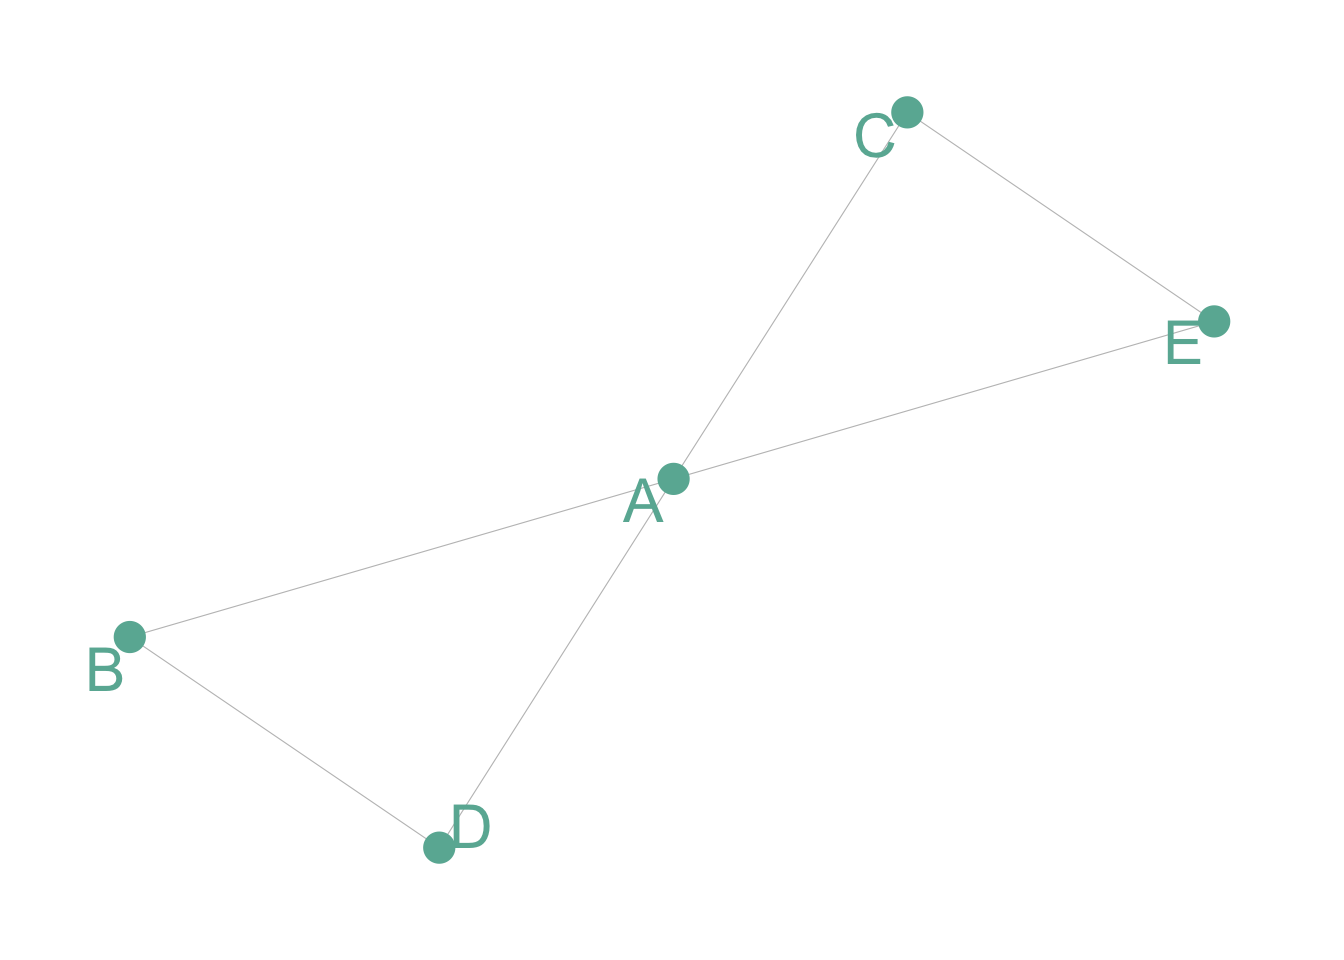 Network diagram – from Data to Viz